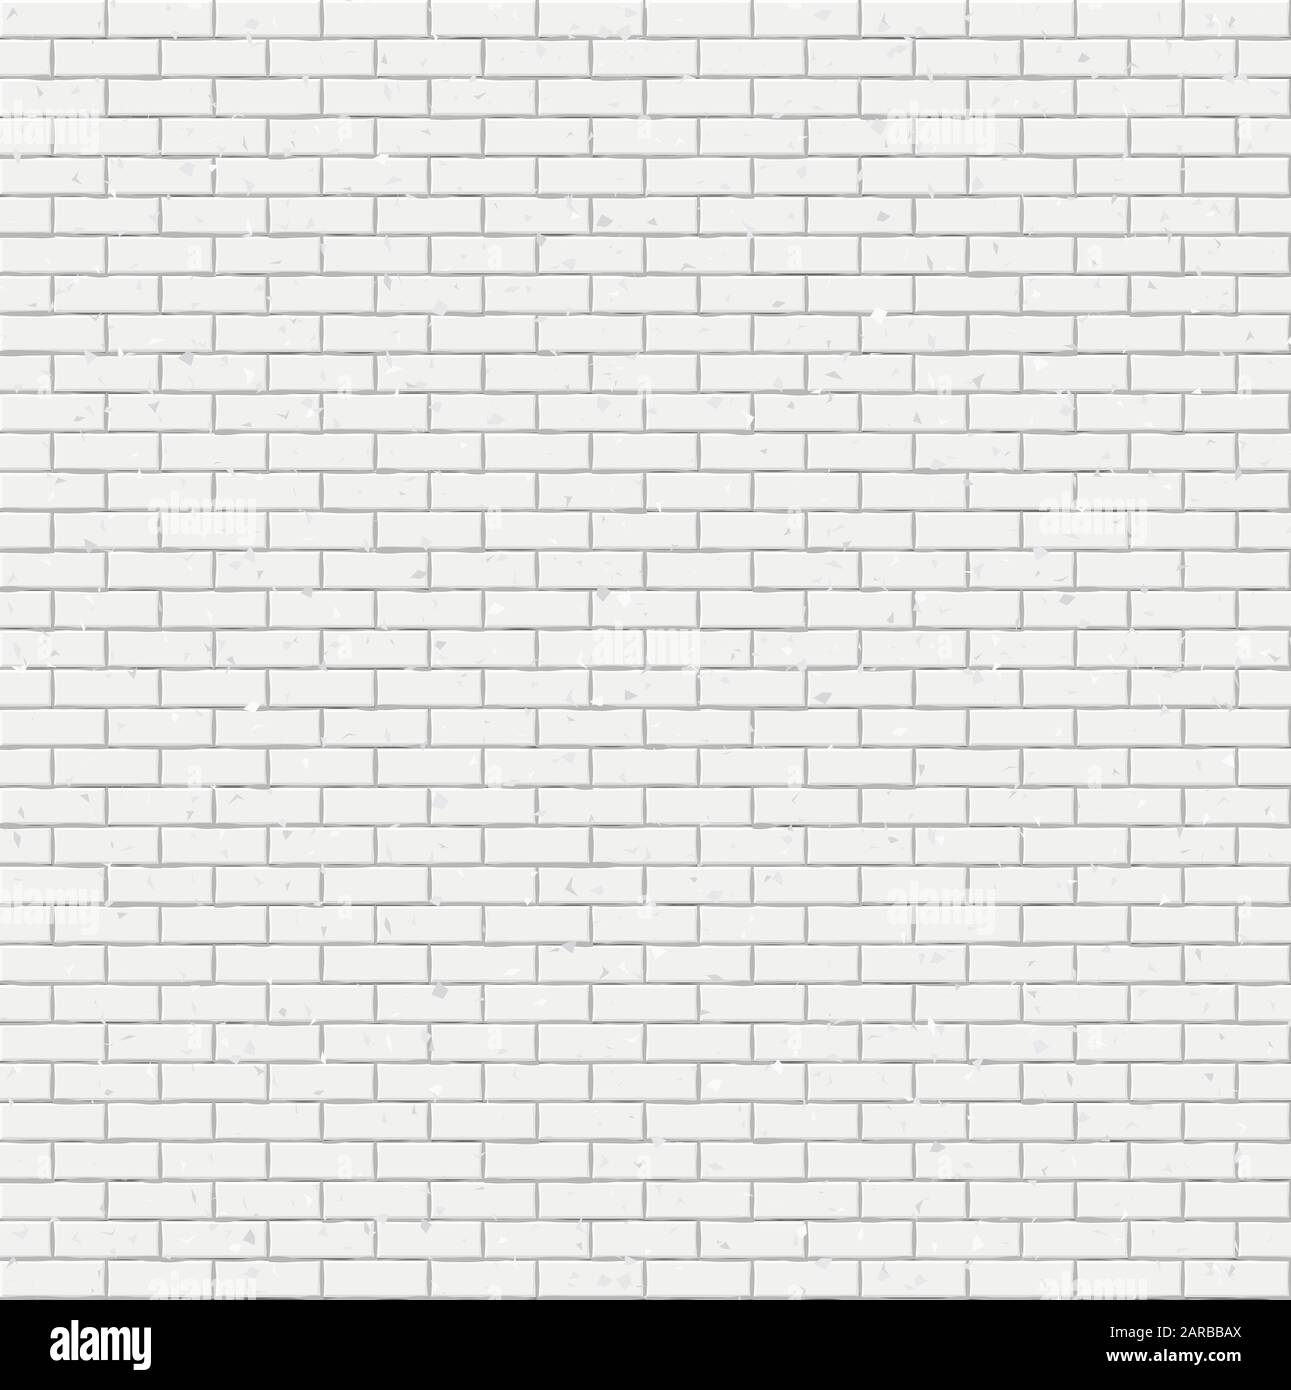 White Brick Wall Texture Seamless Geometric Pattern Of Bricks Stock Vector Image Art Alamy